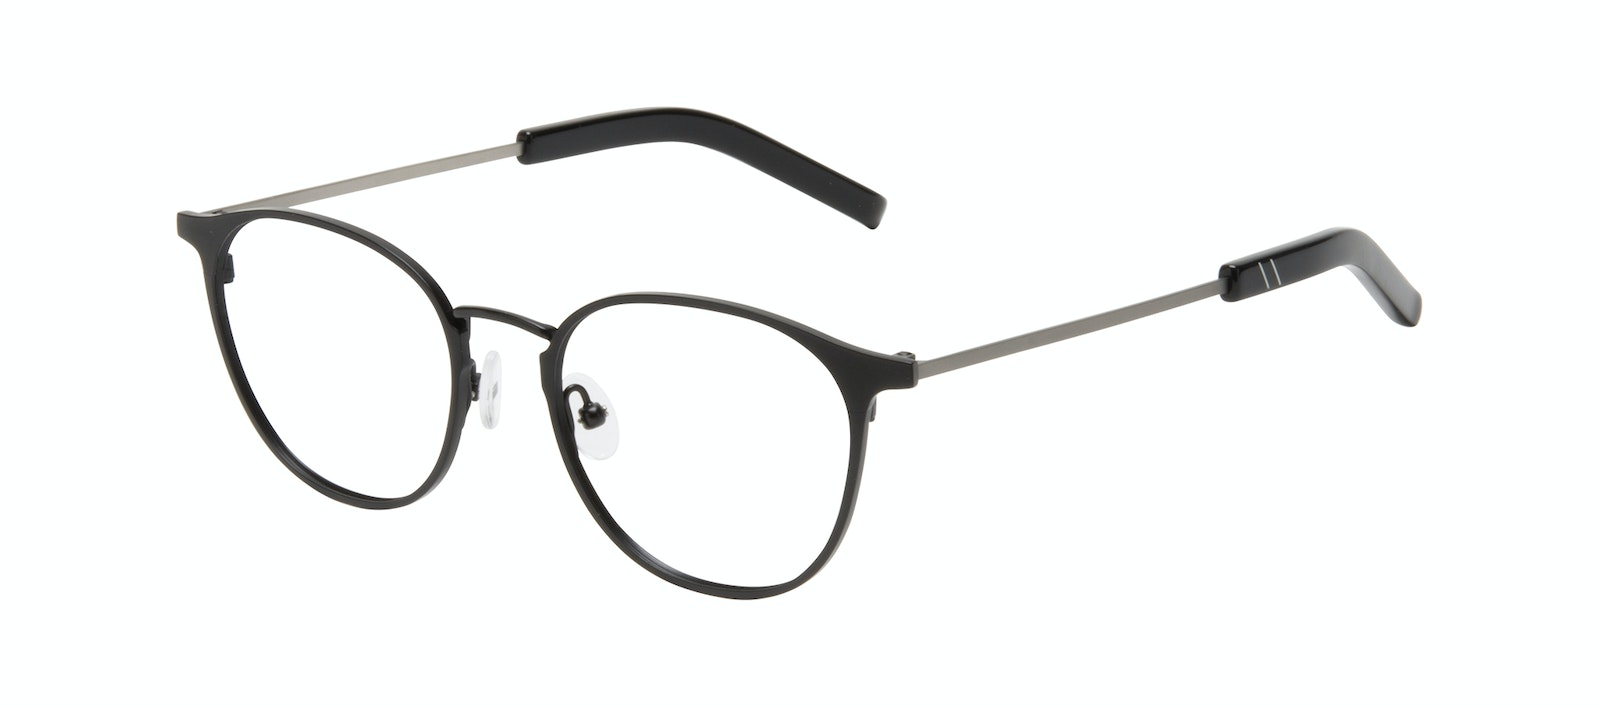 Affordable Fashion Glasses Round Eyeglasses Men Point Onyx Matte Tilt